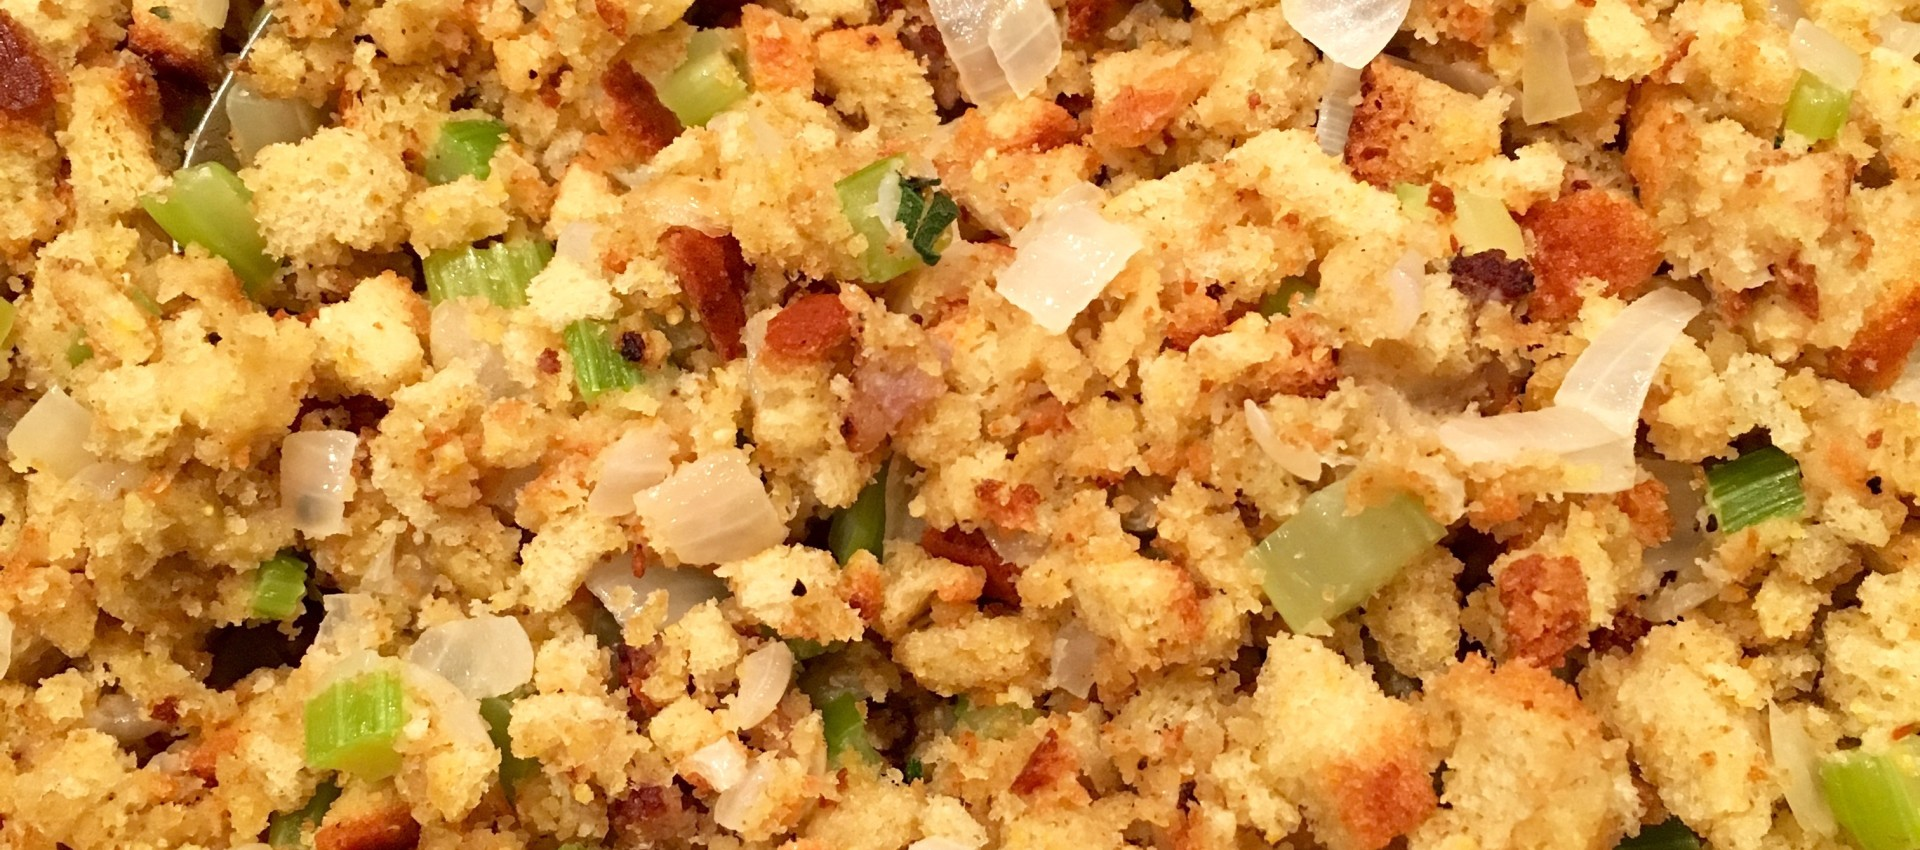 Cornbread and Sausage Stuffing Blythes Blog